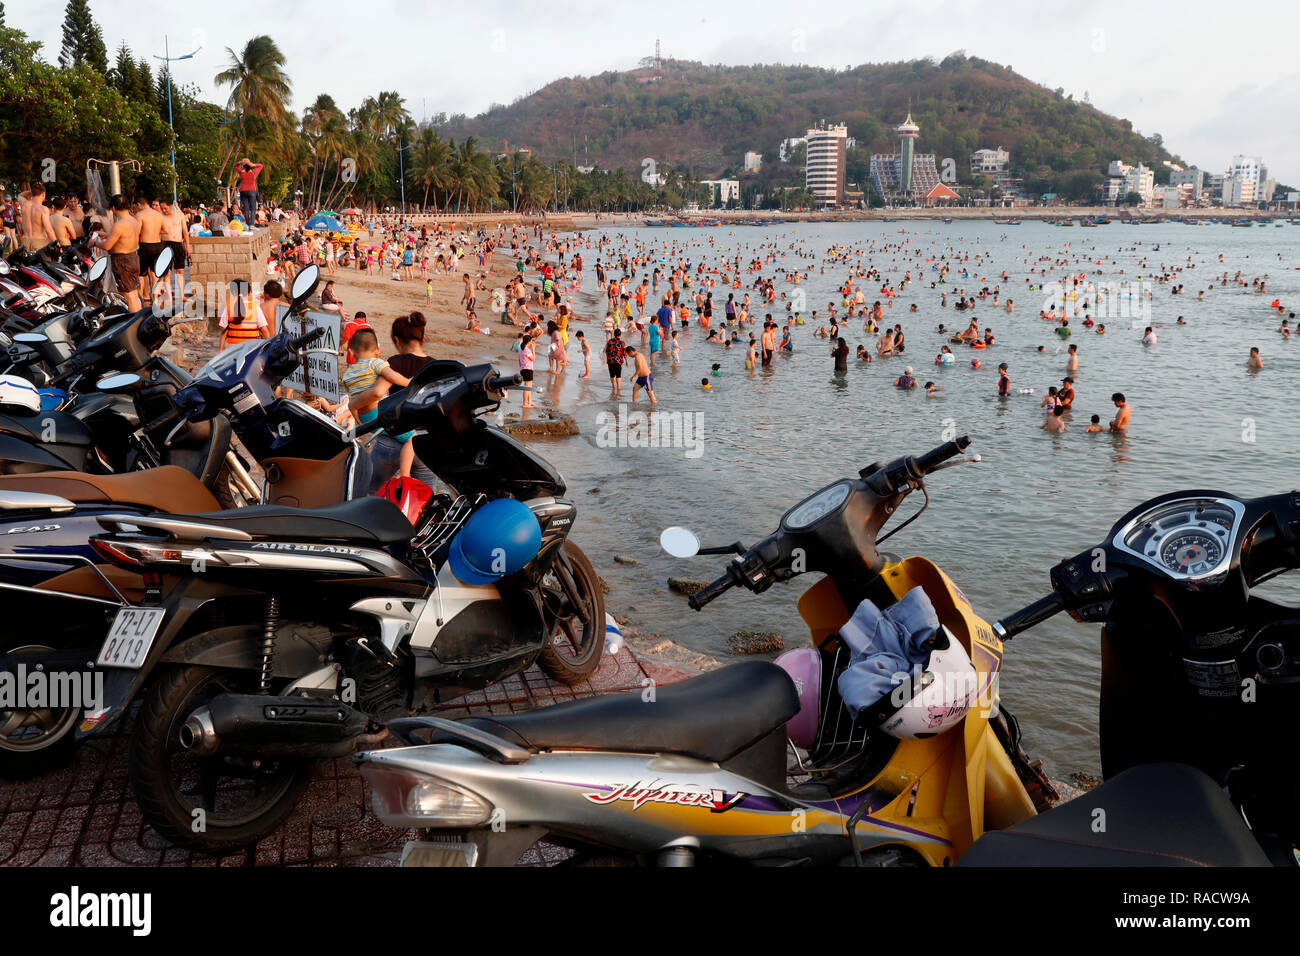 Sunday at the beach, Vietnamese families swimming in the South China Sea, Hang Dua Bay, Vung Tau, Vietnam, Indochina, Southeast Asia, Asia - Stock Image